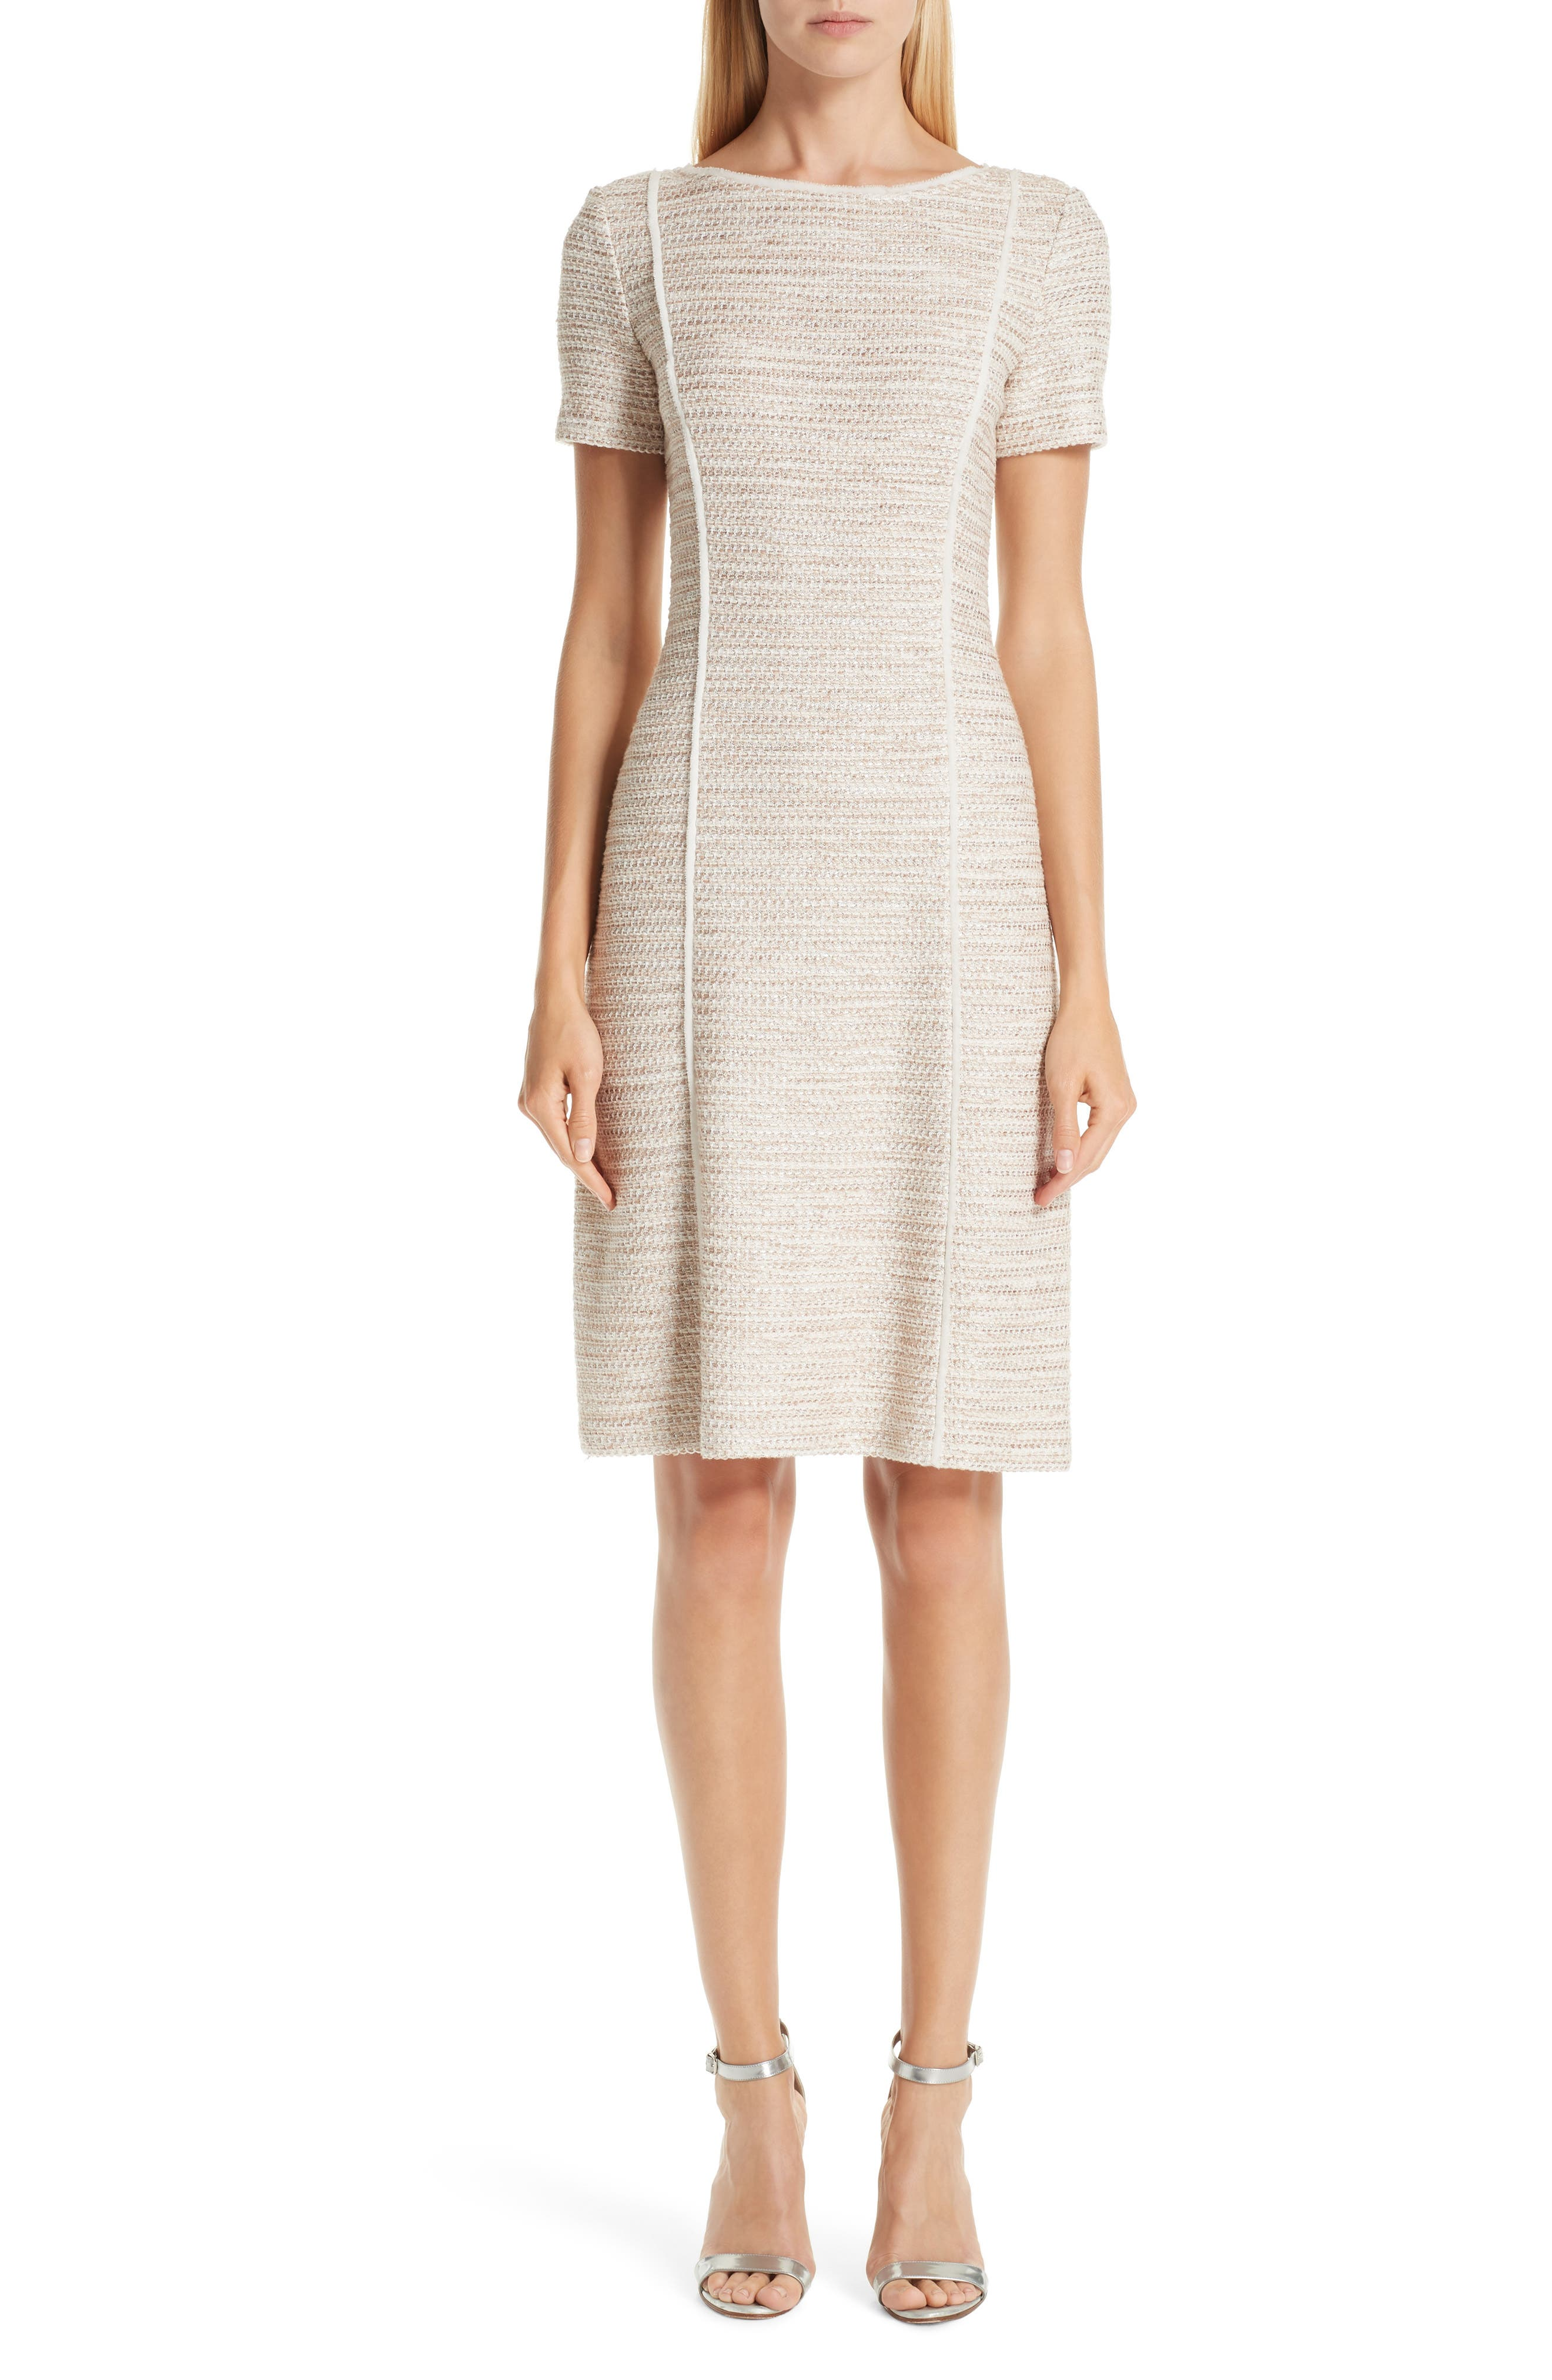 St. John Collection Dune Inlay Knit Sheath Dress, Beige